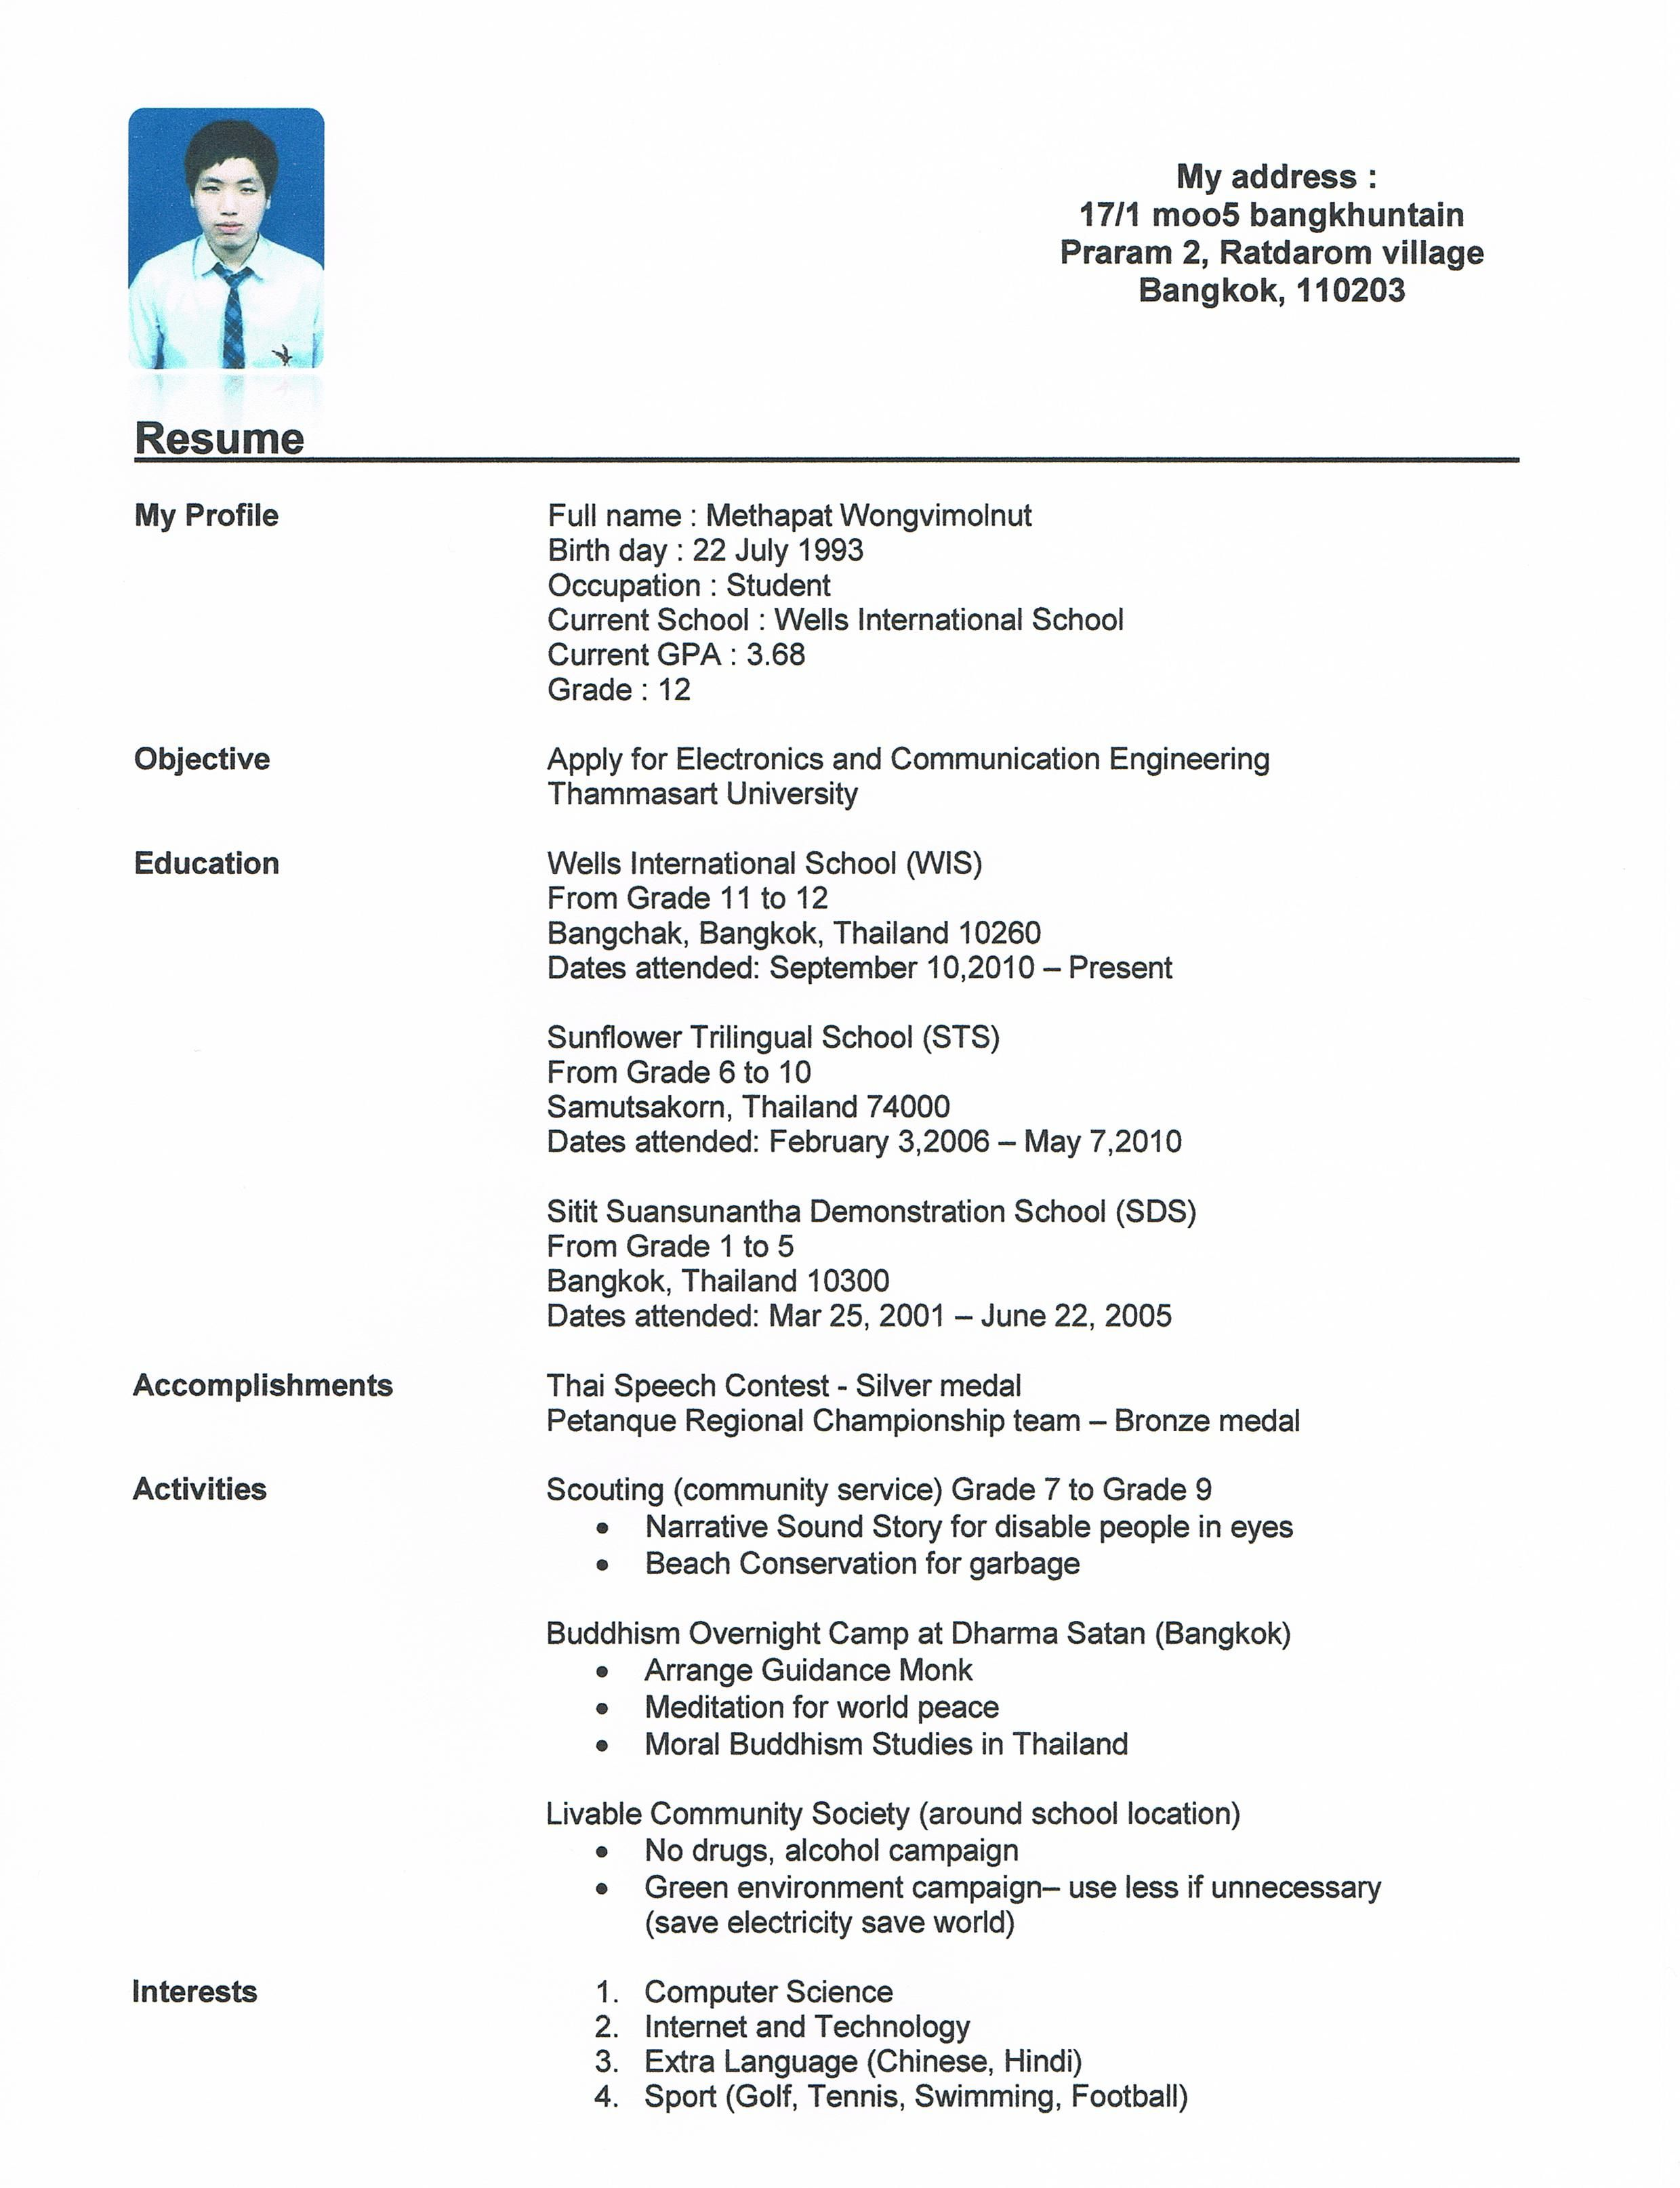 Resume Student Resumes For Jobs high school resume for jobs builder templates http httpwww